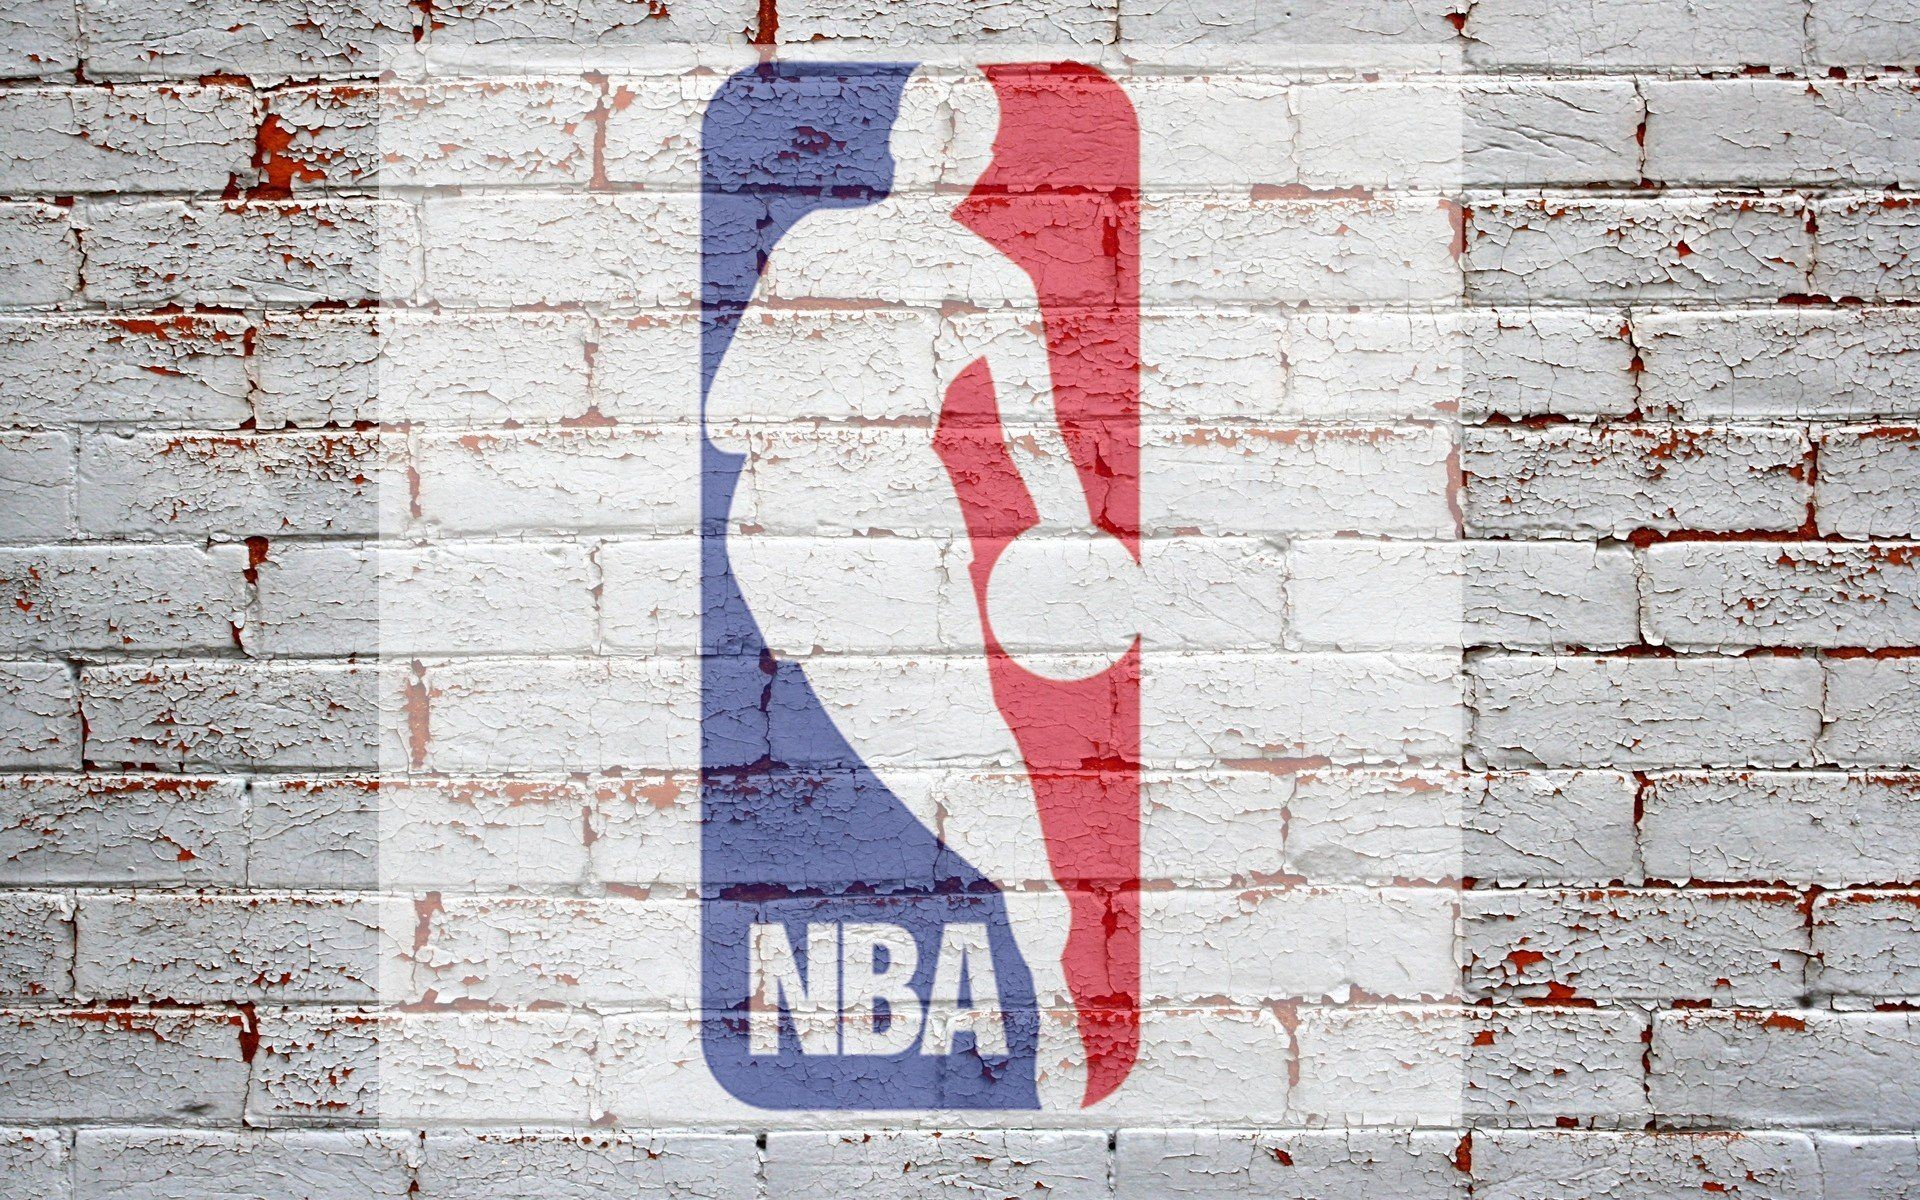 Res: 1920x1200, NBA Logo Wallpapers Wallpaper 1365×1024 NBA Logo Backgrounds (49 Wallpapers)  | Adorable